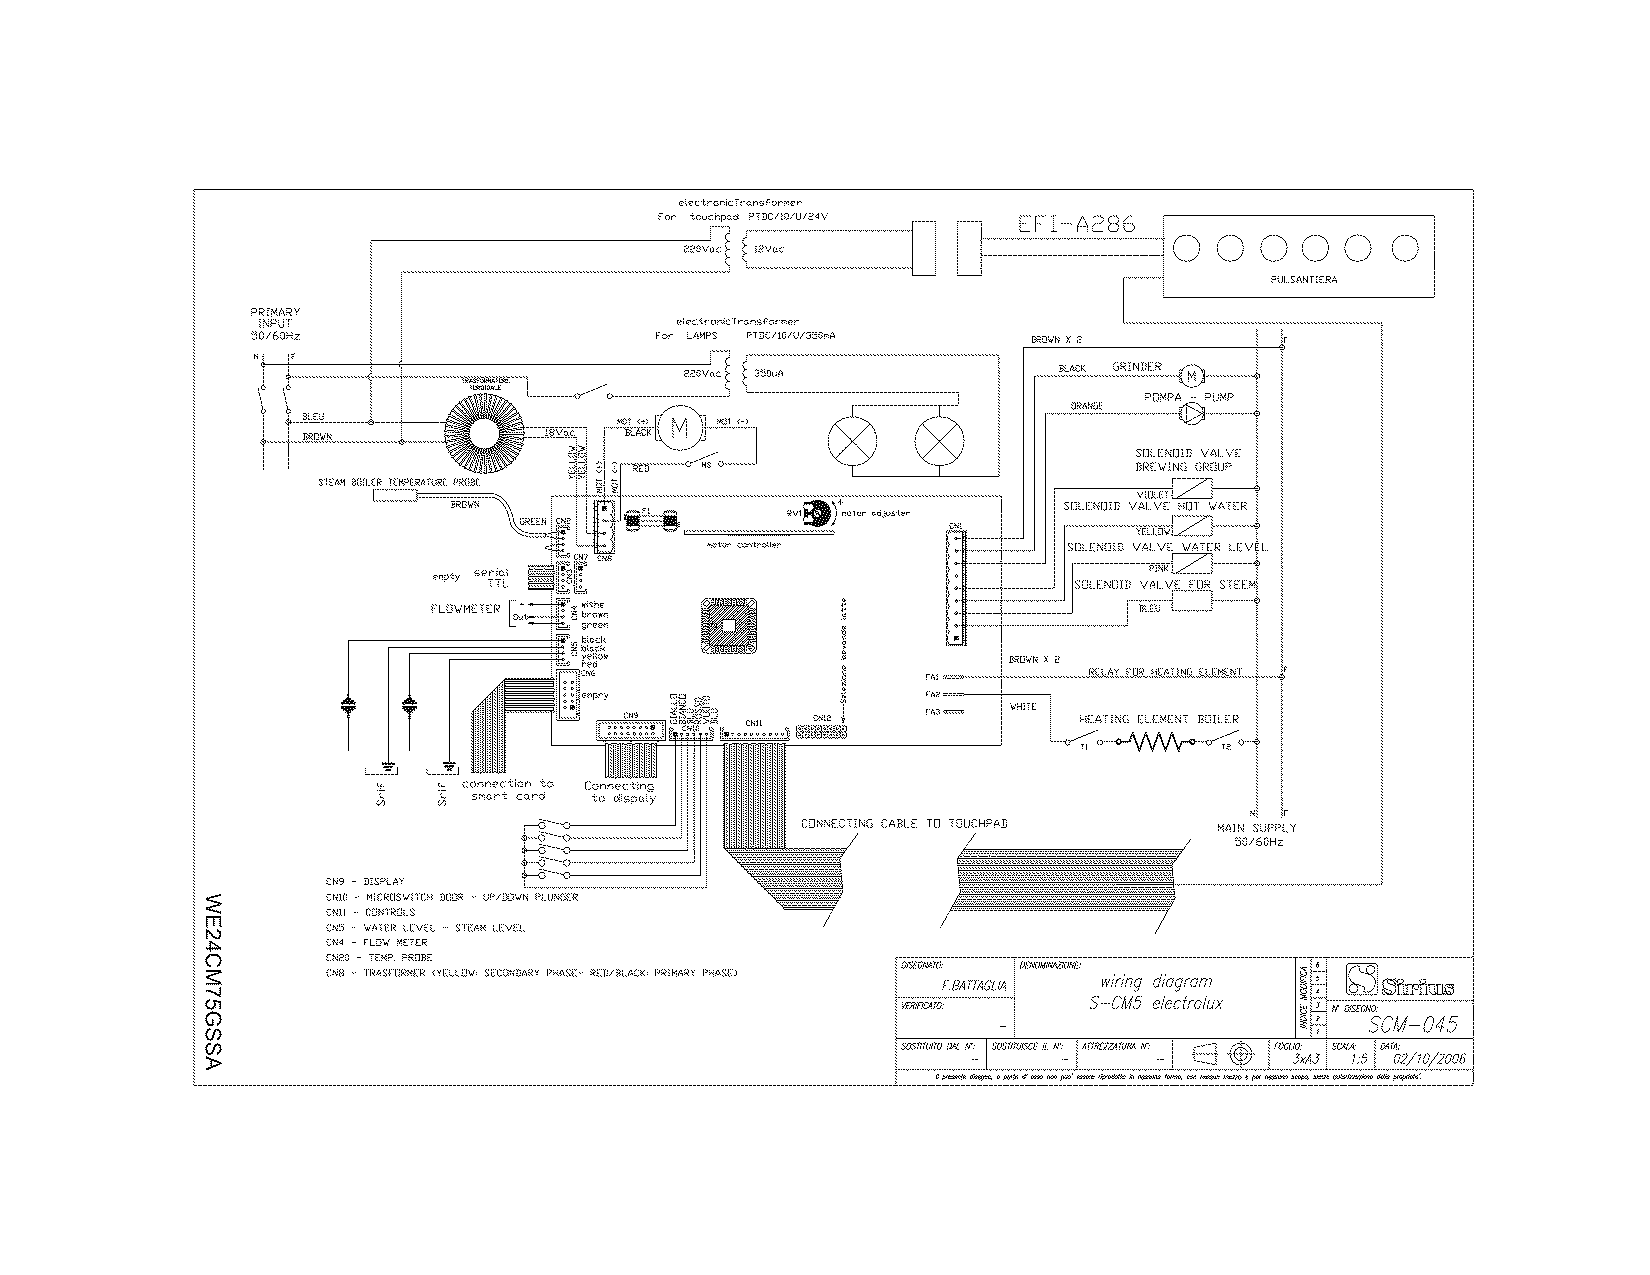 [DIAGRAM] Farberware Coffee Pot Wiring Diagrams FULL